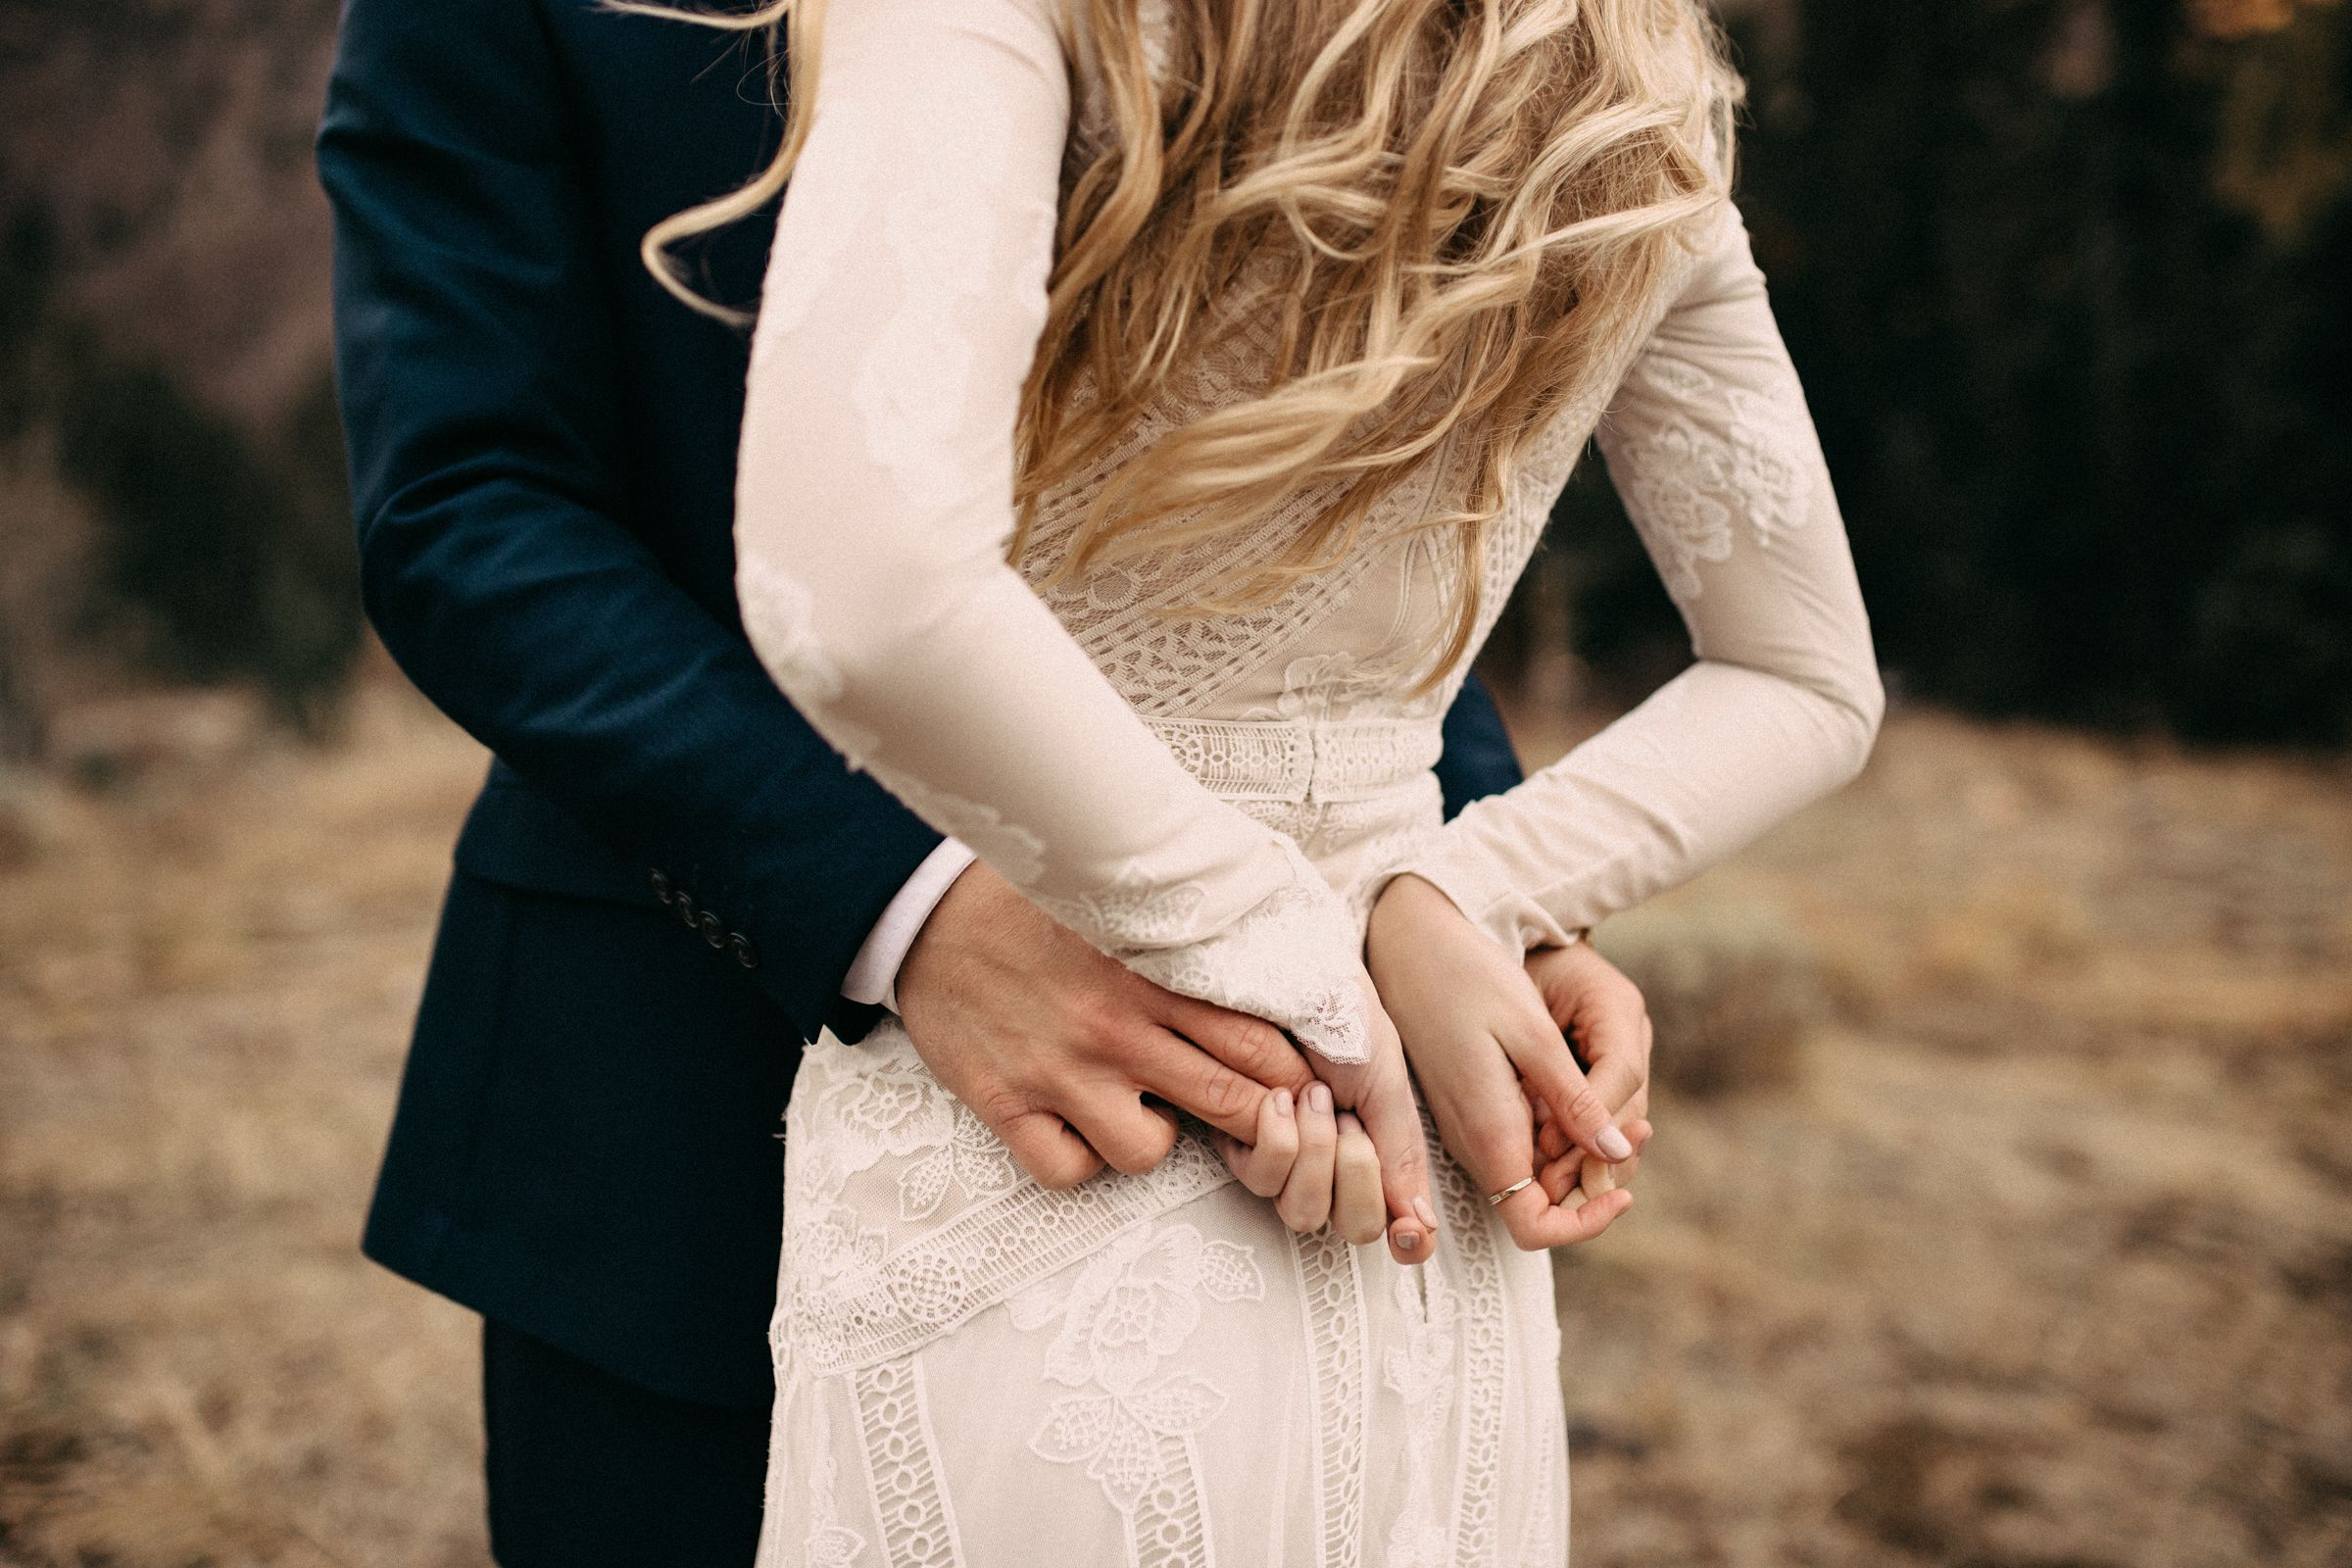 Casual wedding dresses for winter wedding  modest wedding dress with long sleeves from alta moda modest